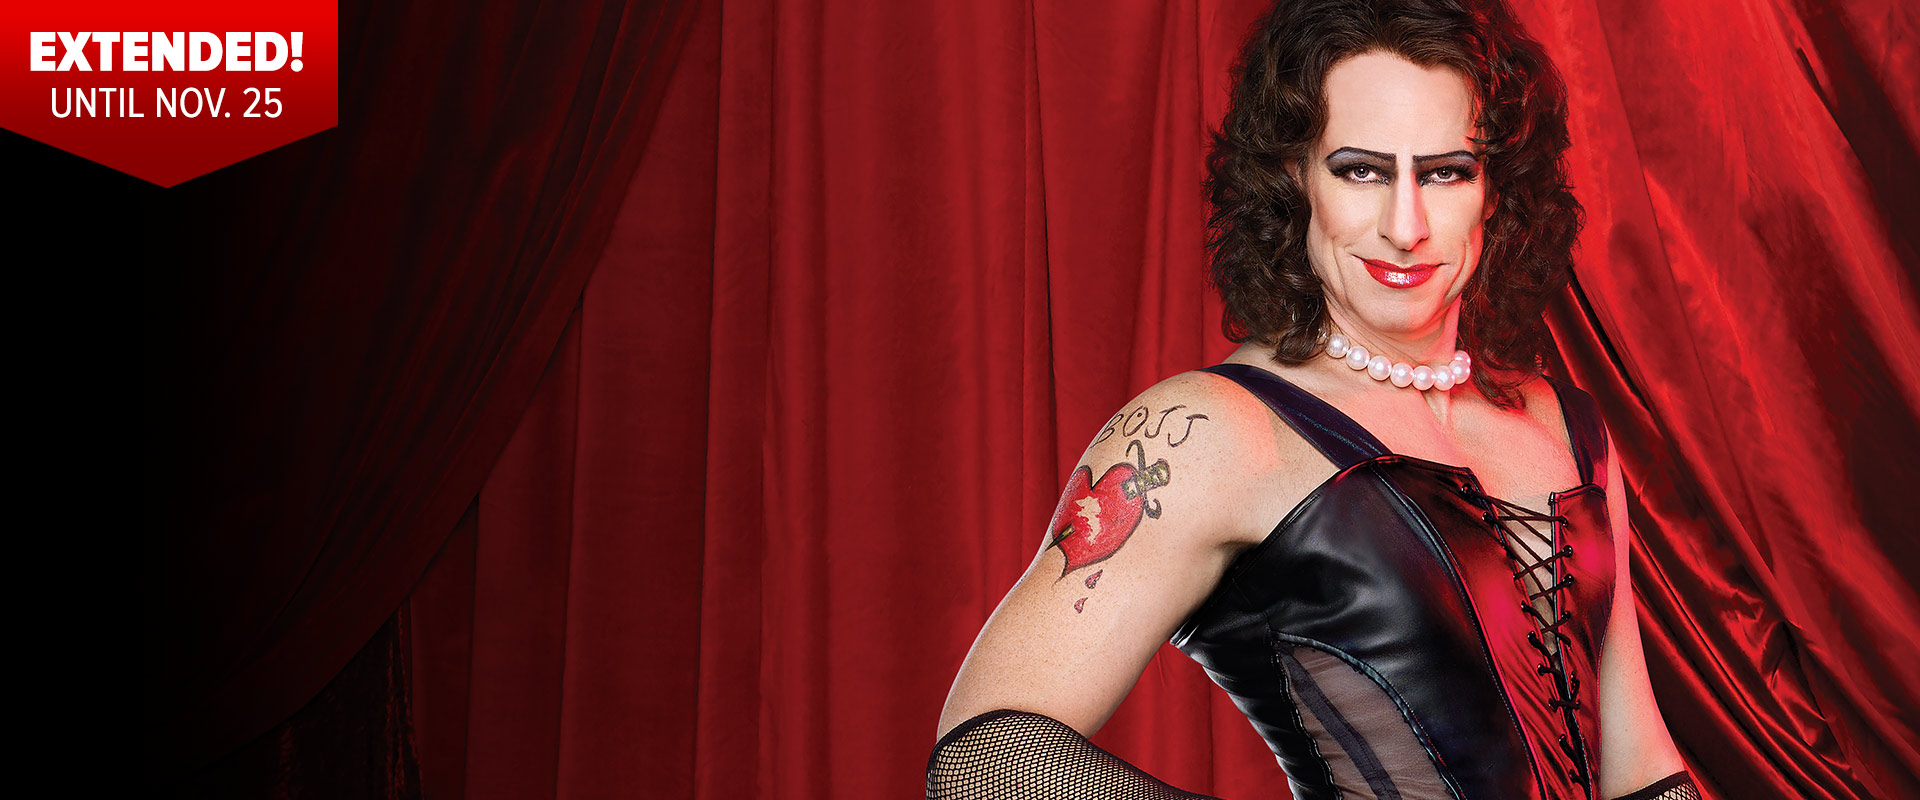 Rocky Horror Show Publicity Image